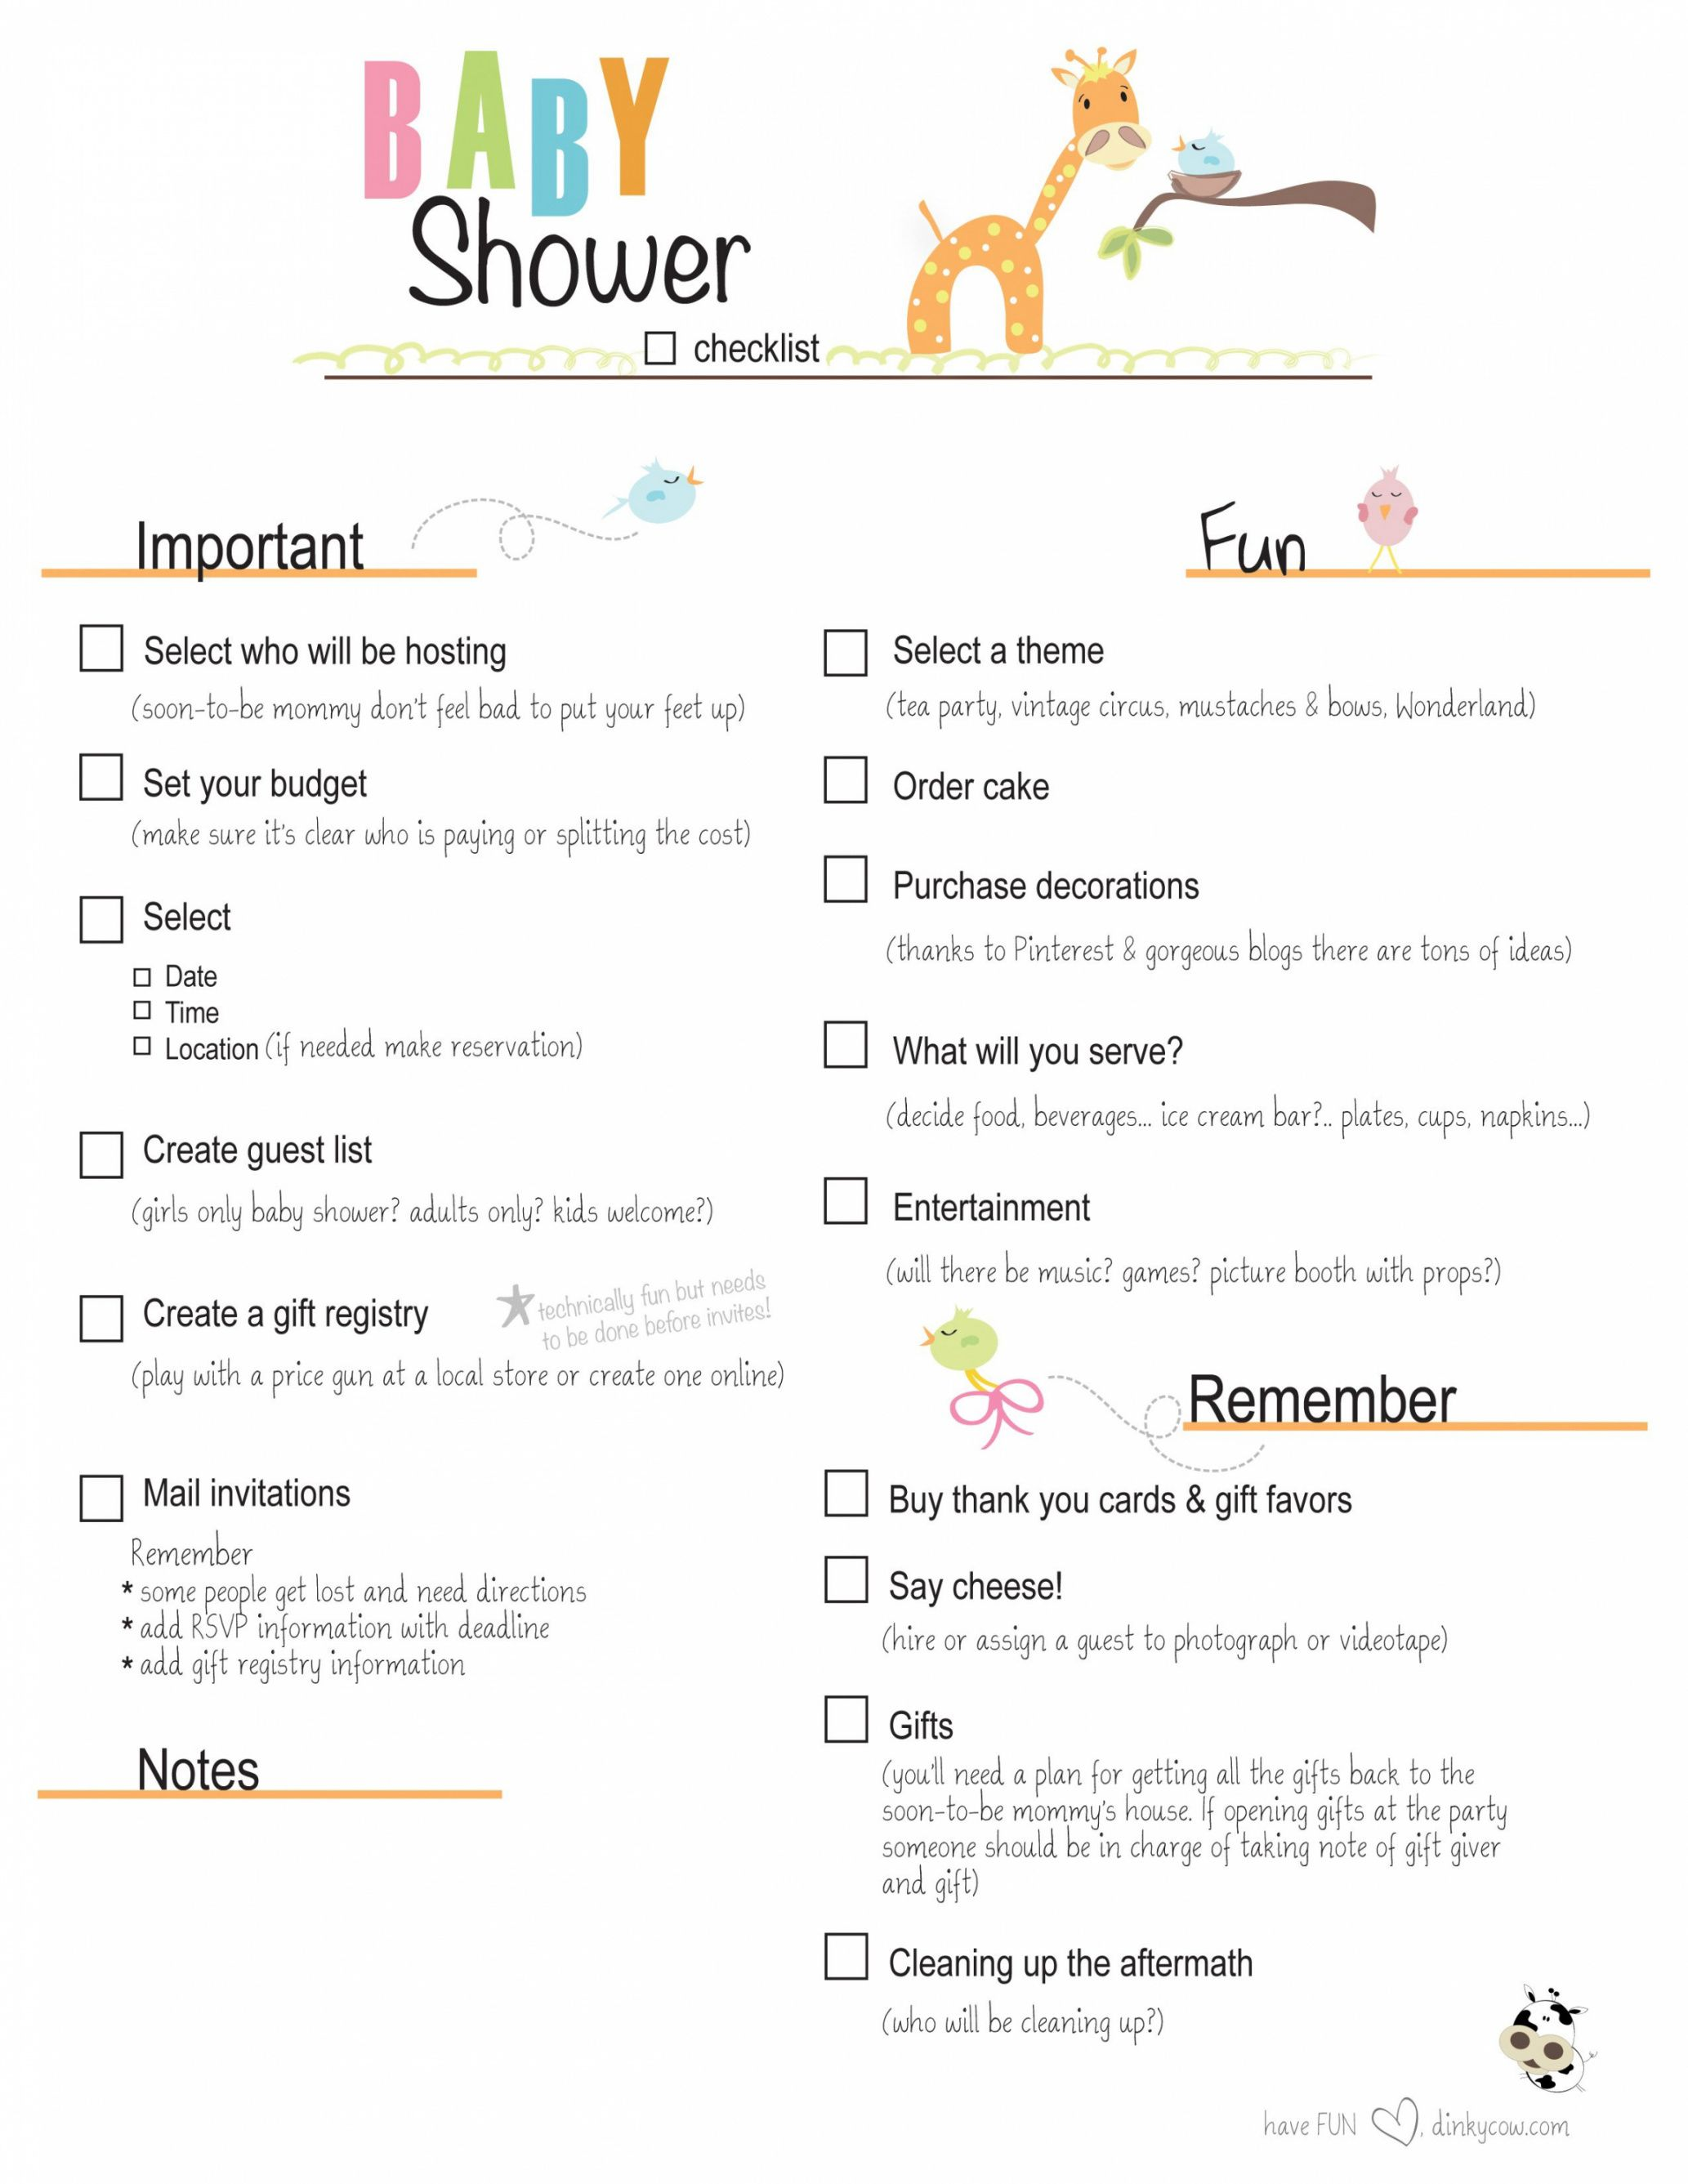 Get Our Image Of Baby Shower Itinerary Template For Free Baby Shower Planning List Baby Shower Event Baby Shower Planning Checklist